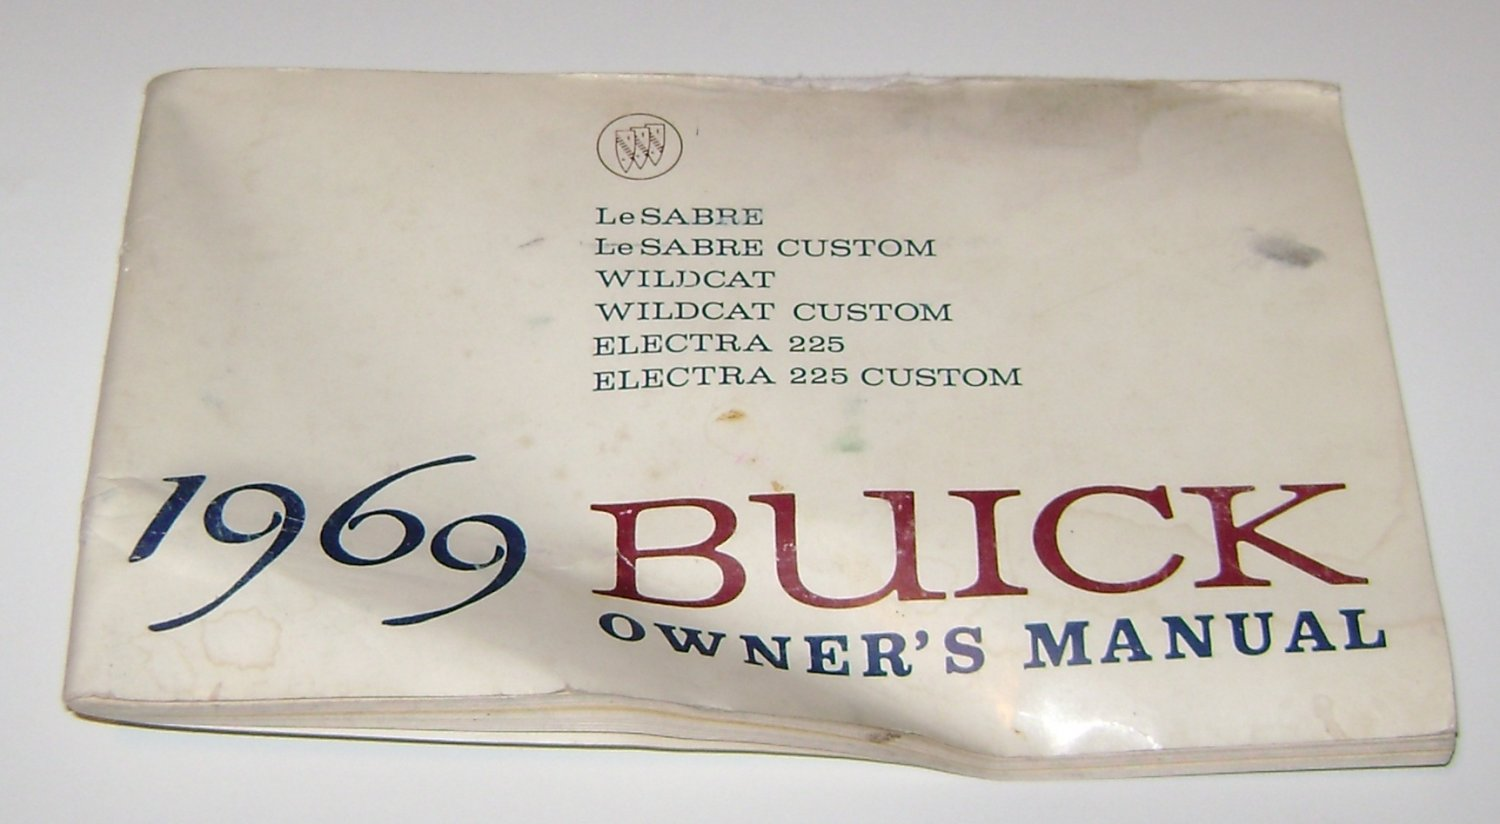 1969 Buick owners manual Lesabre Electra Wildcat